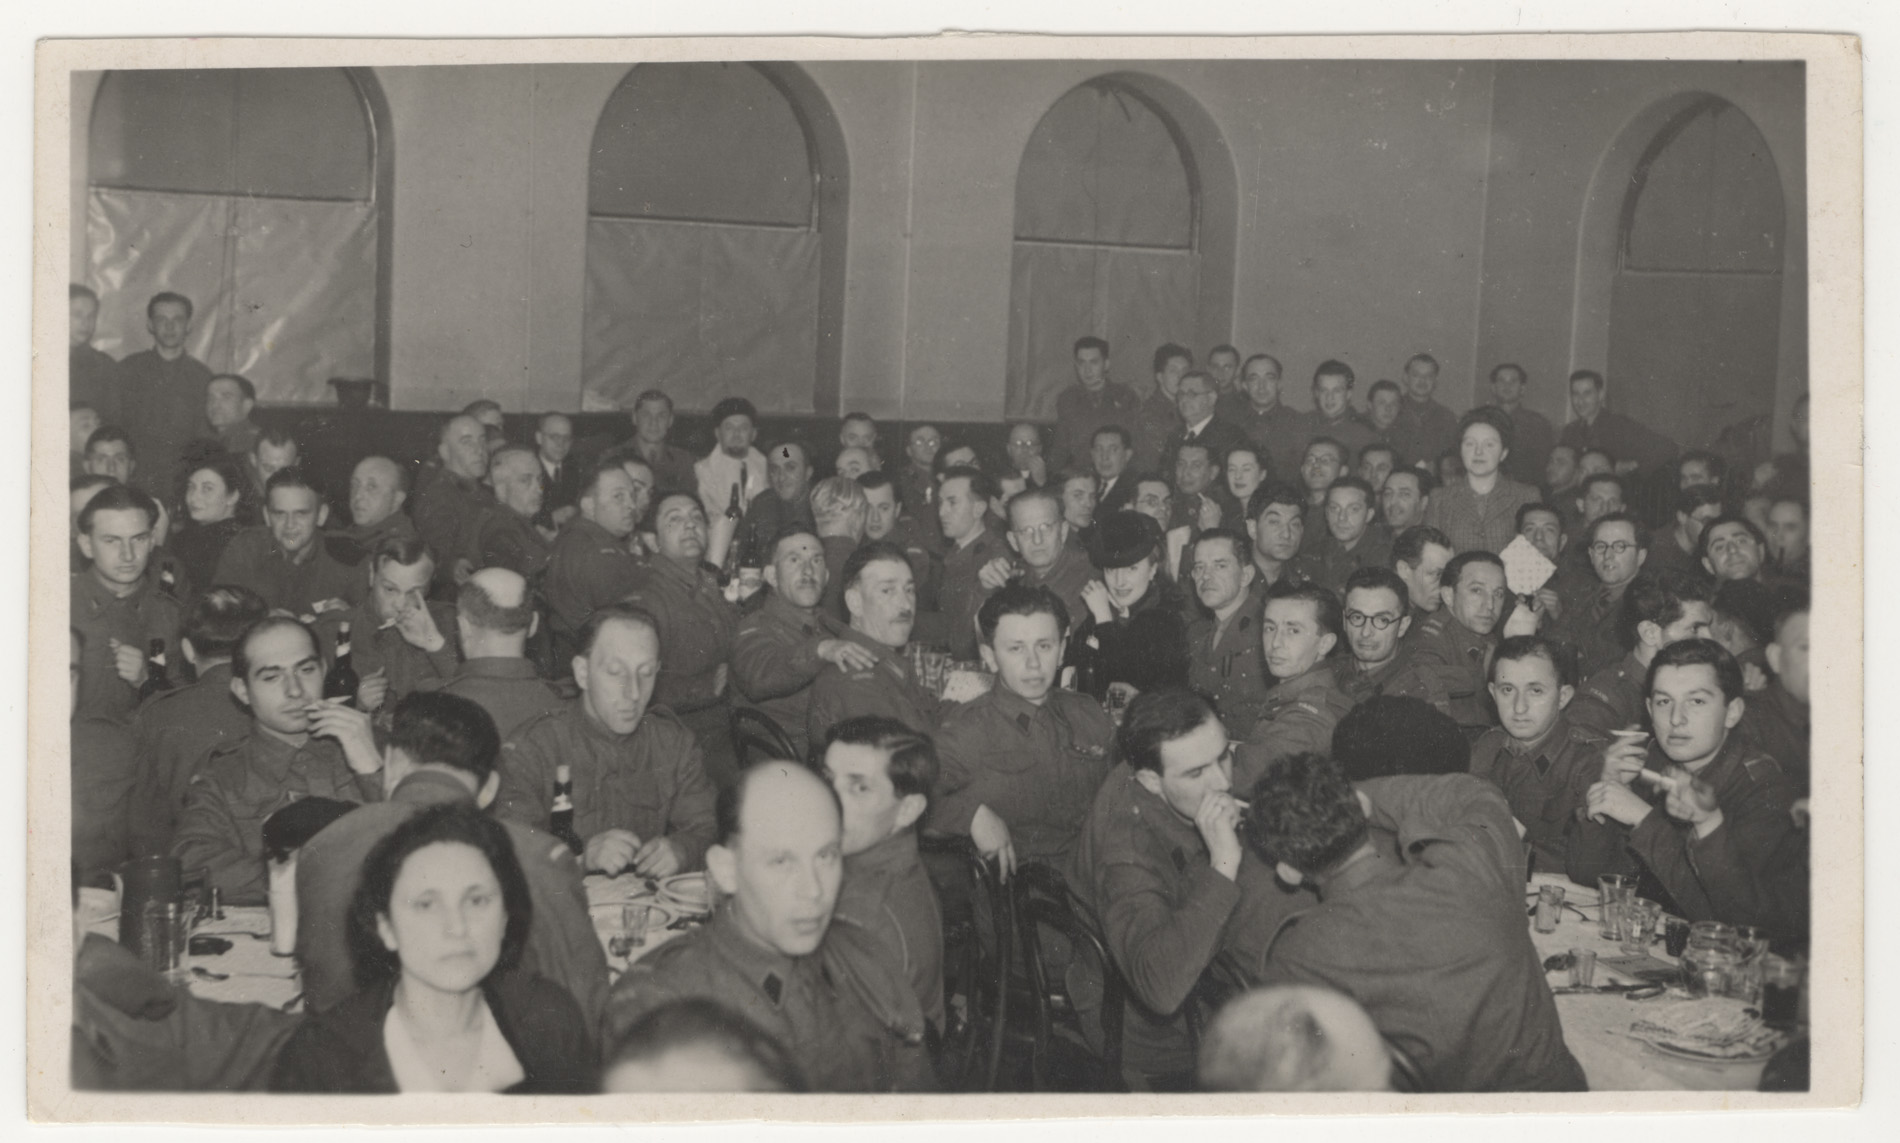 This photograph depicts Polish soldiers, accompanied by women and other civilians, at a dinner for Passover, an important Jewish holiday. Willie Glaser is in front of the standing group on the far right of the picture, wearing glasses.